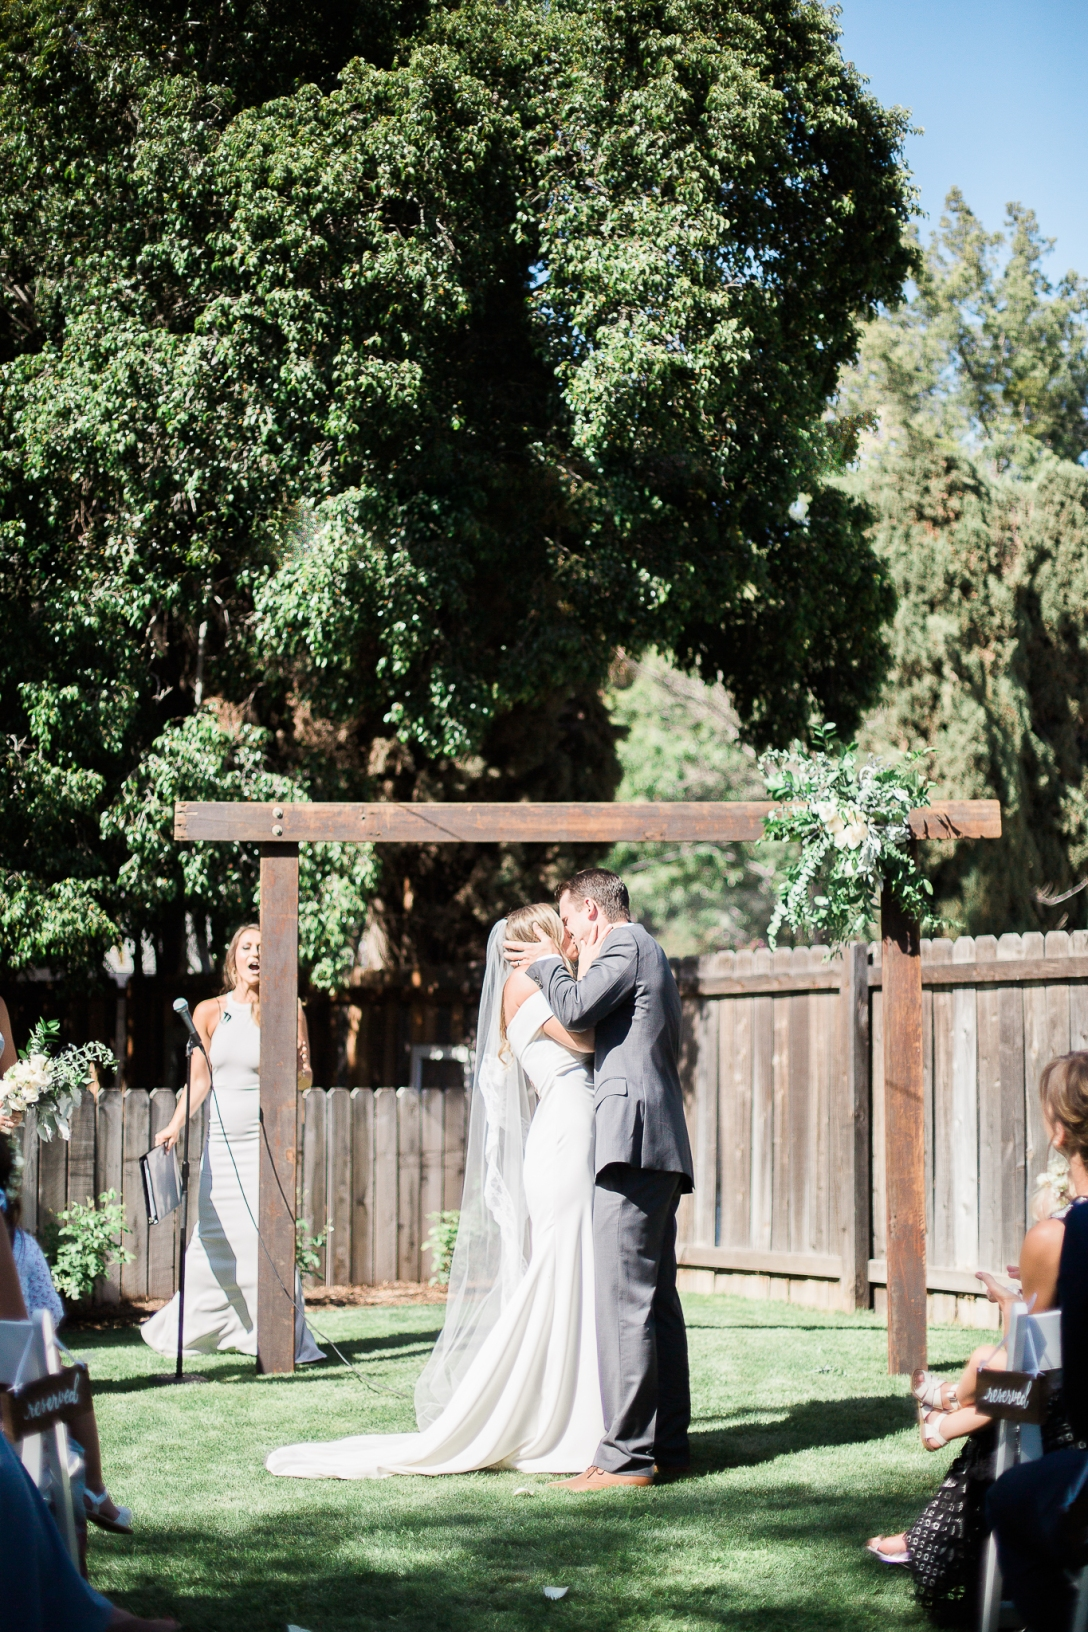 Katy-Steve-Wedding-Tustin-California-52